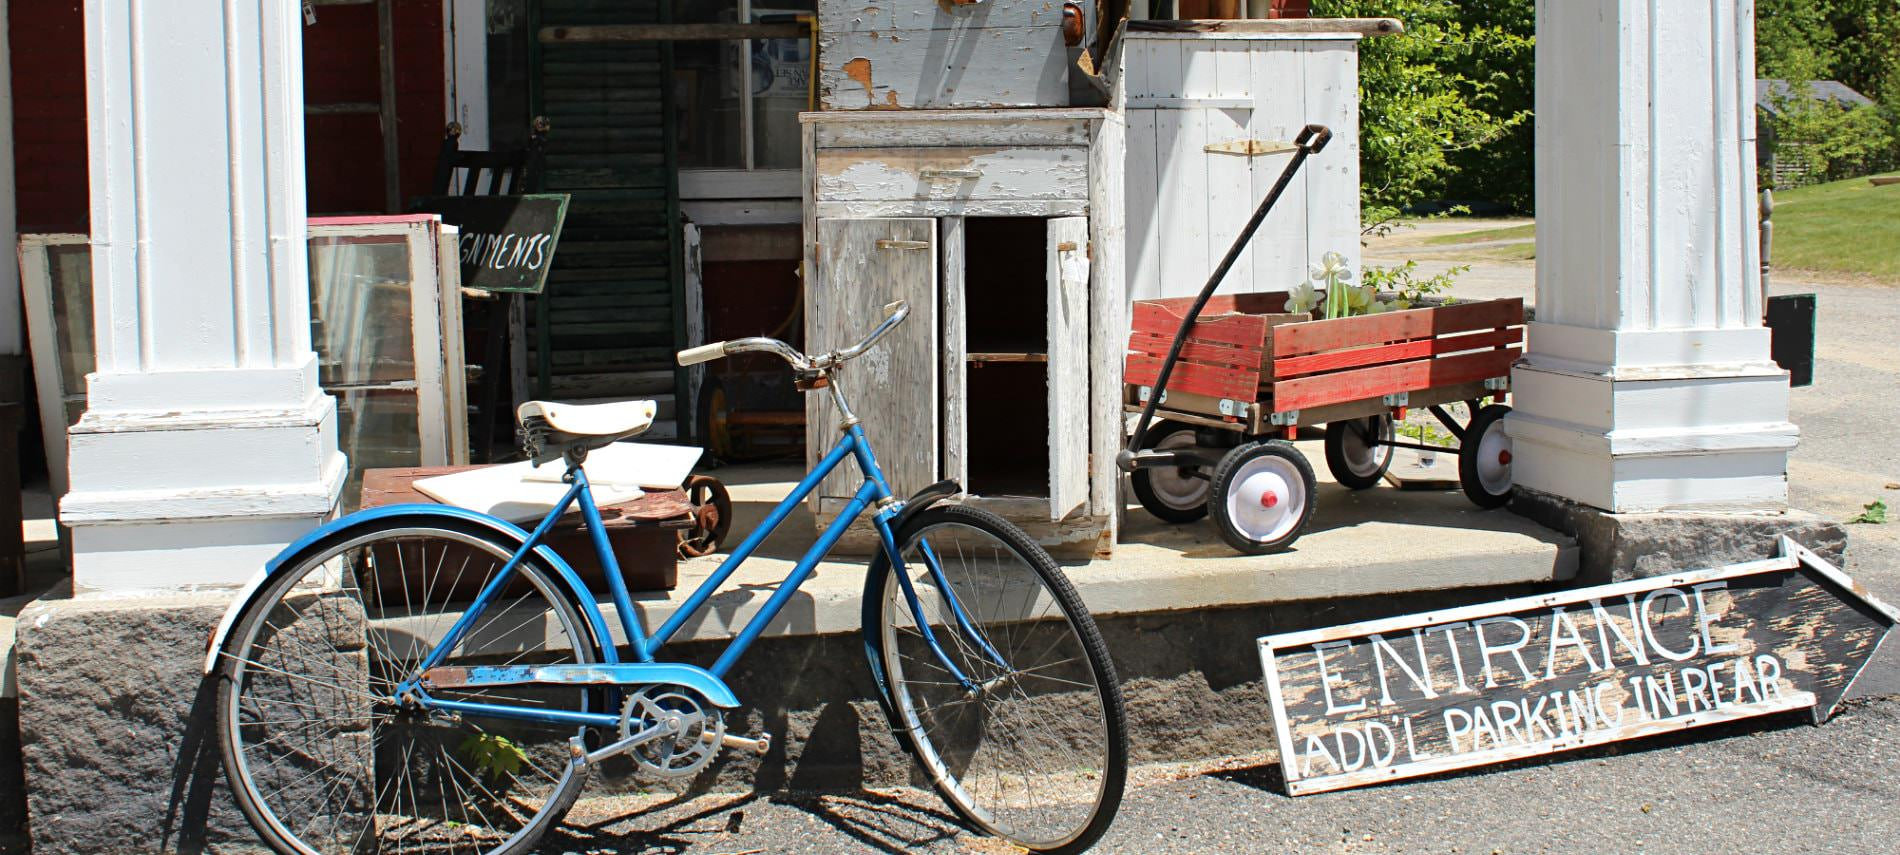 Entrance to antique store with blue bicycle and red wagon